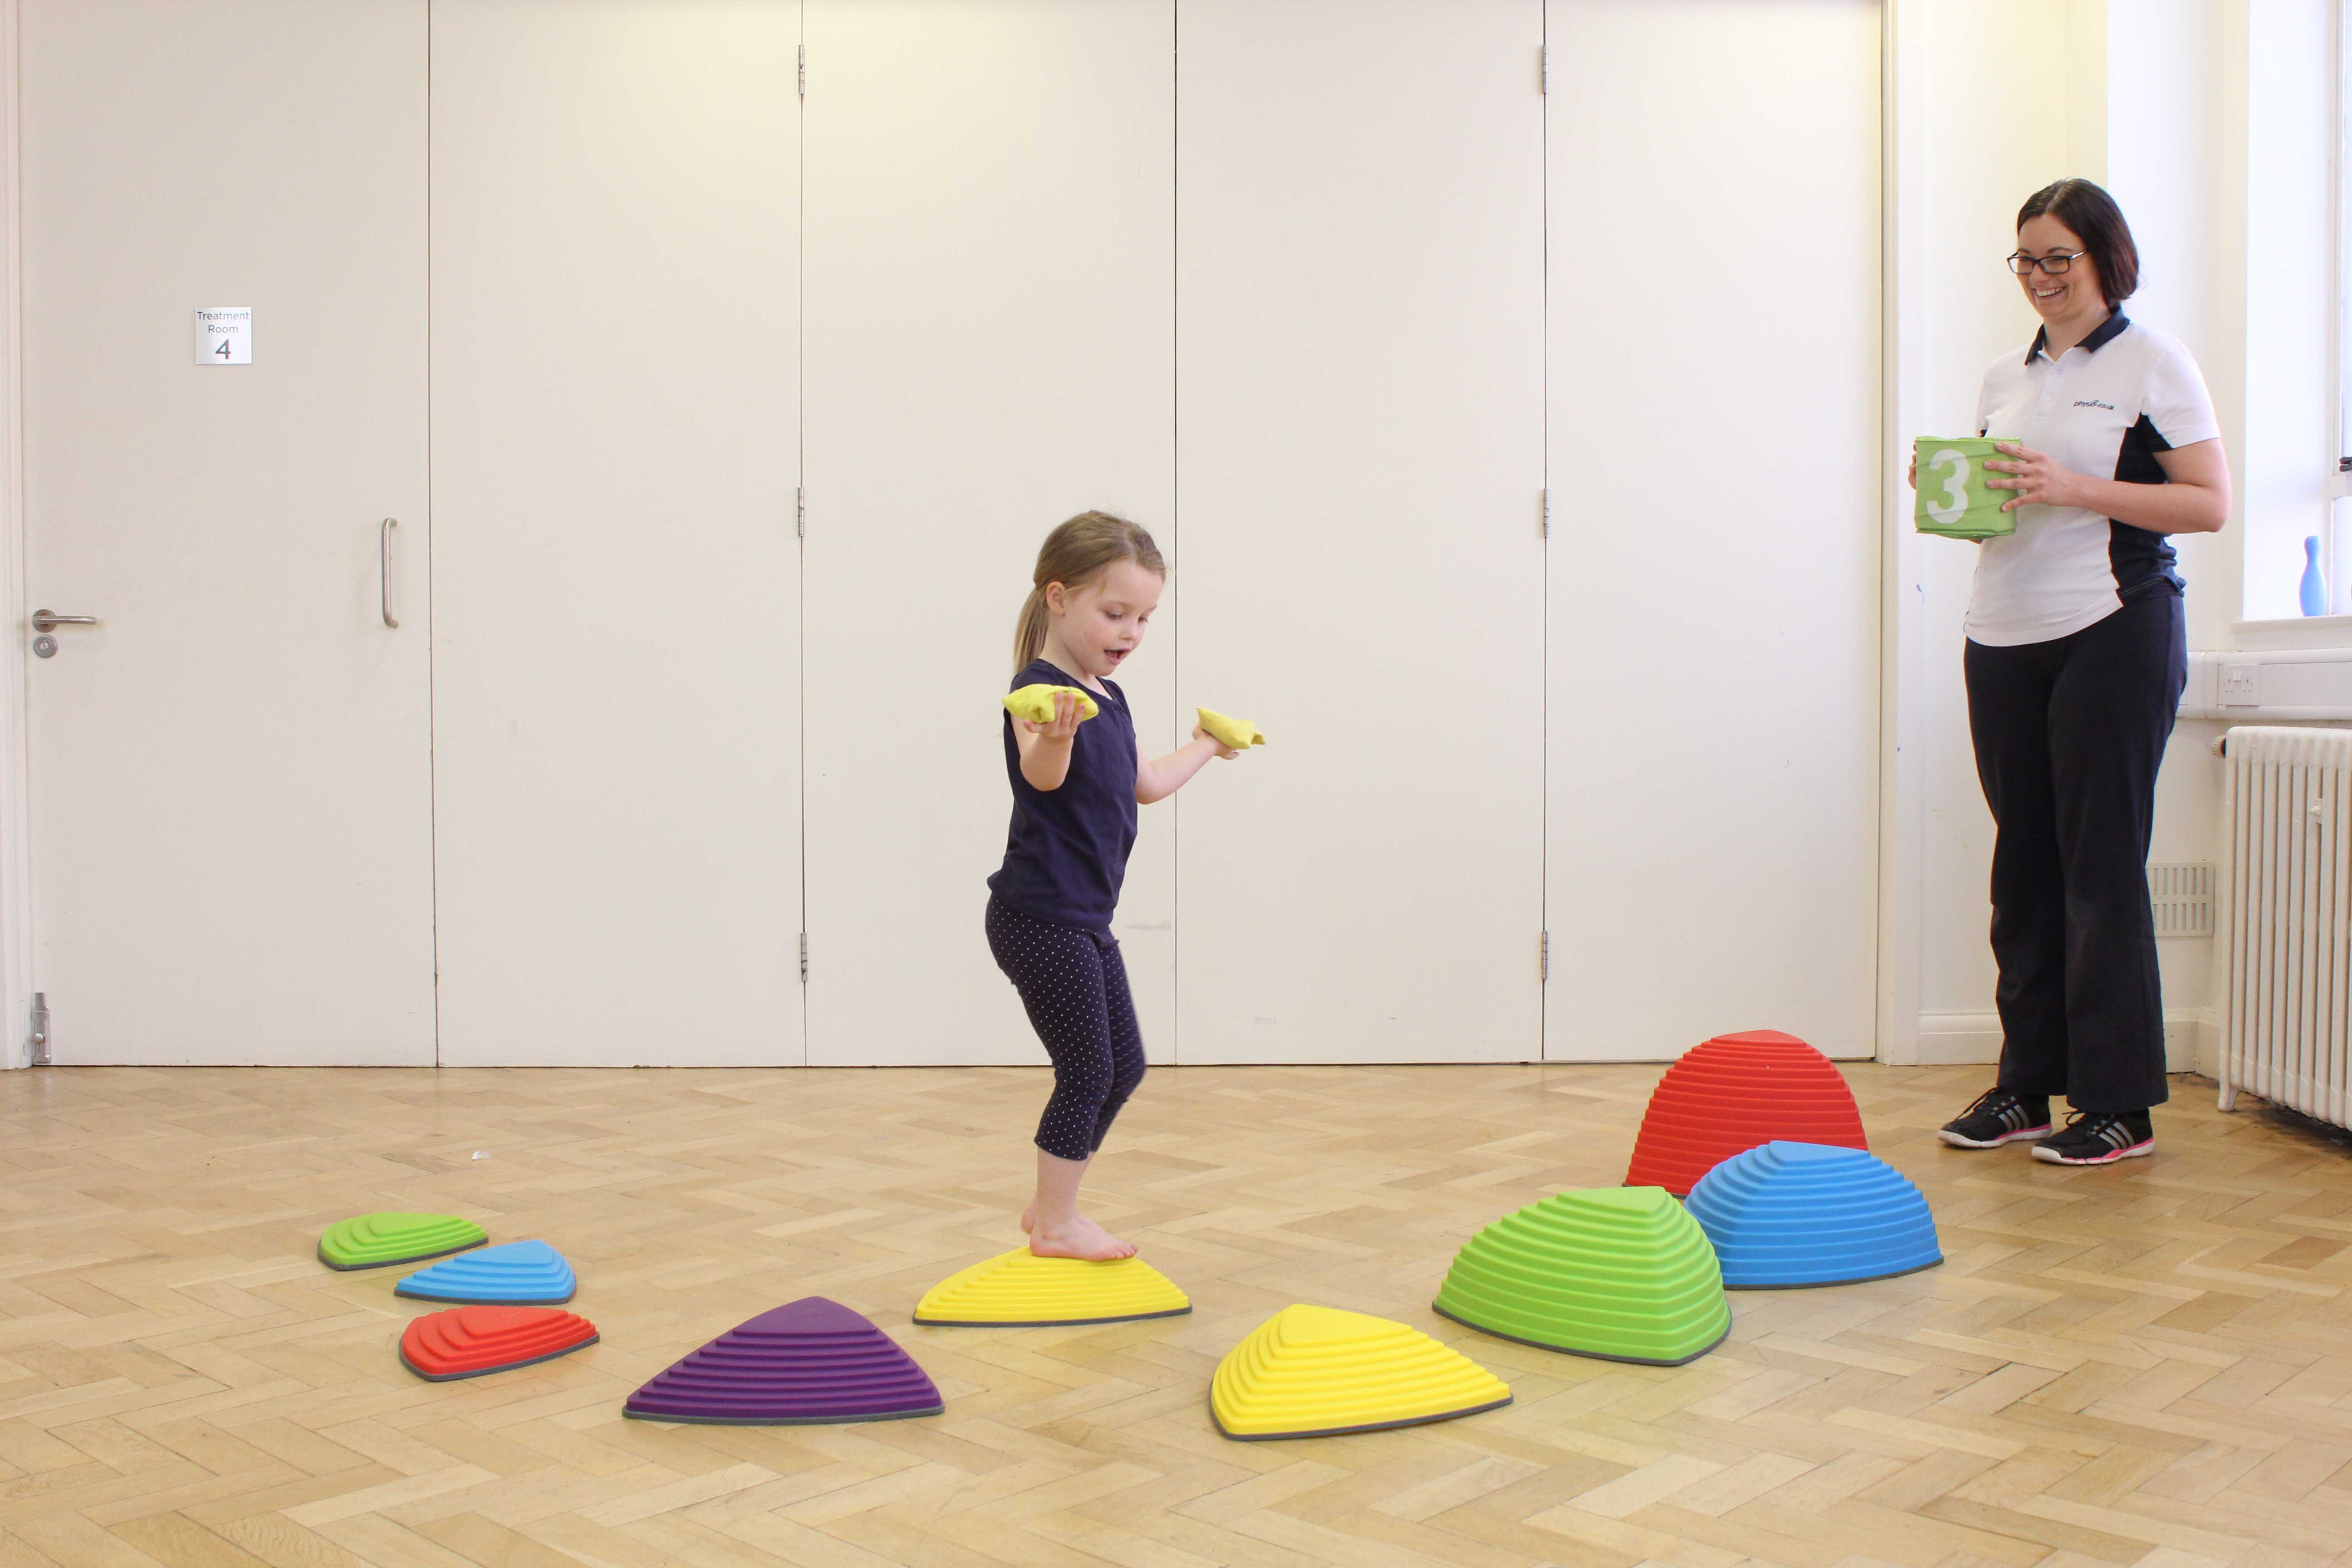 Overcomig sensory defensiveness through play activities supervised by a paediatric physiotherapist